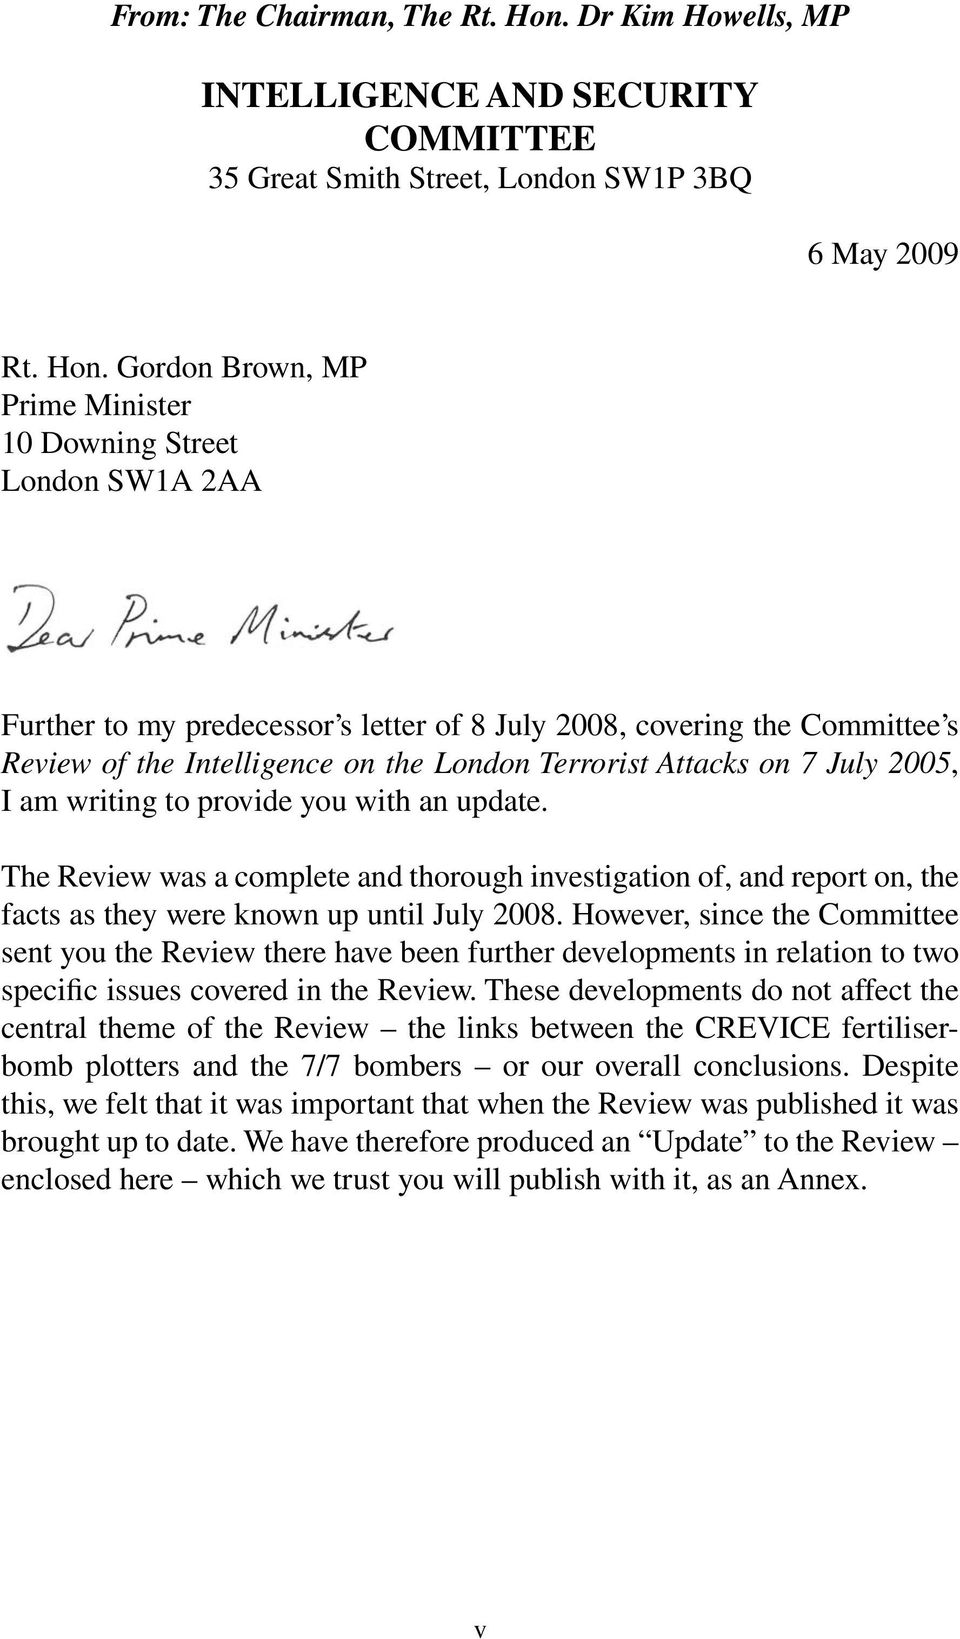 Gordon Brown, MP Prime Minister 10 Downing Street London SW1A 2AA Further to my predecessor s letter of 8 July 2008, covering the Committee s Review of the Intelligence on the London Terrorist